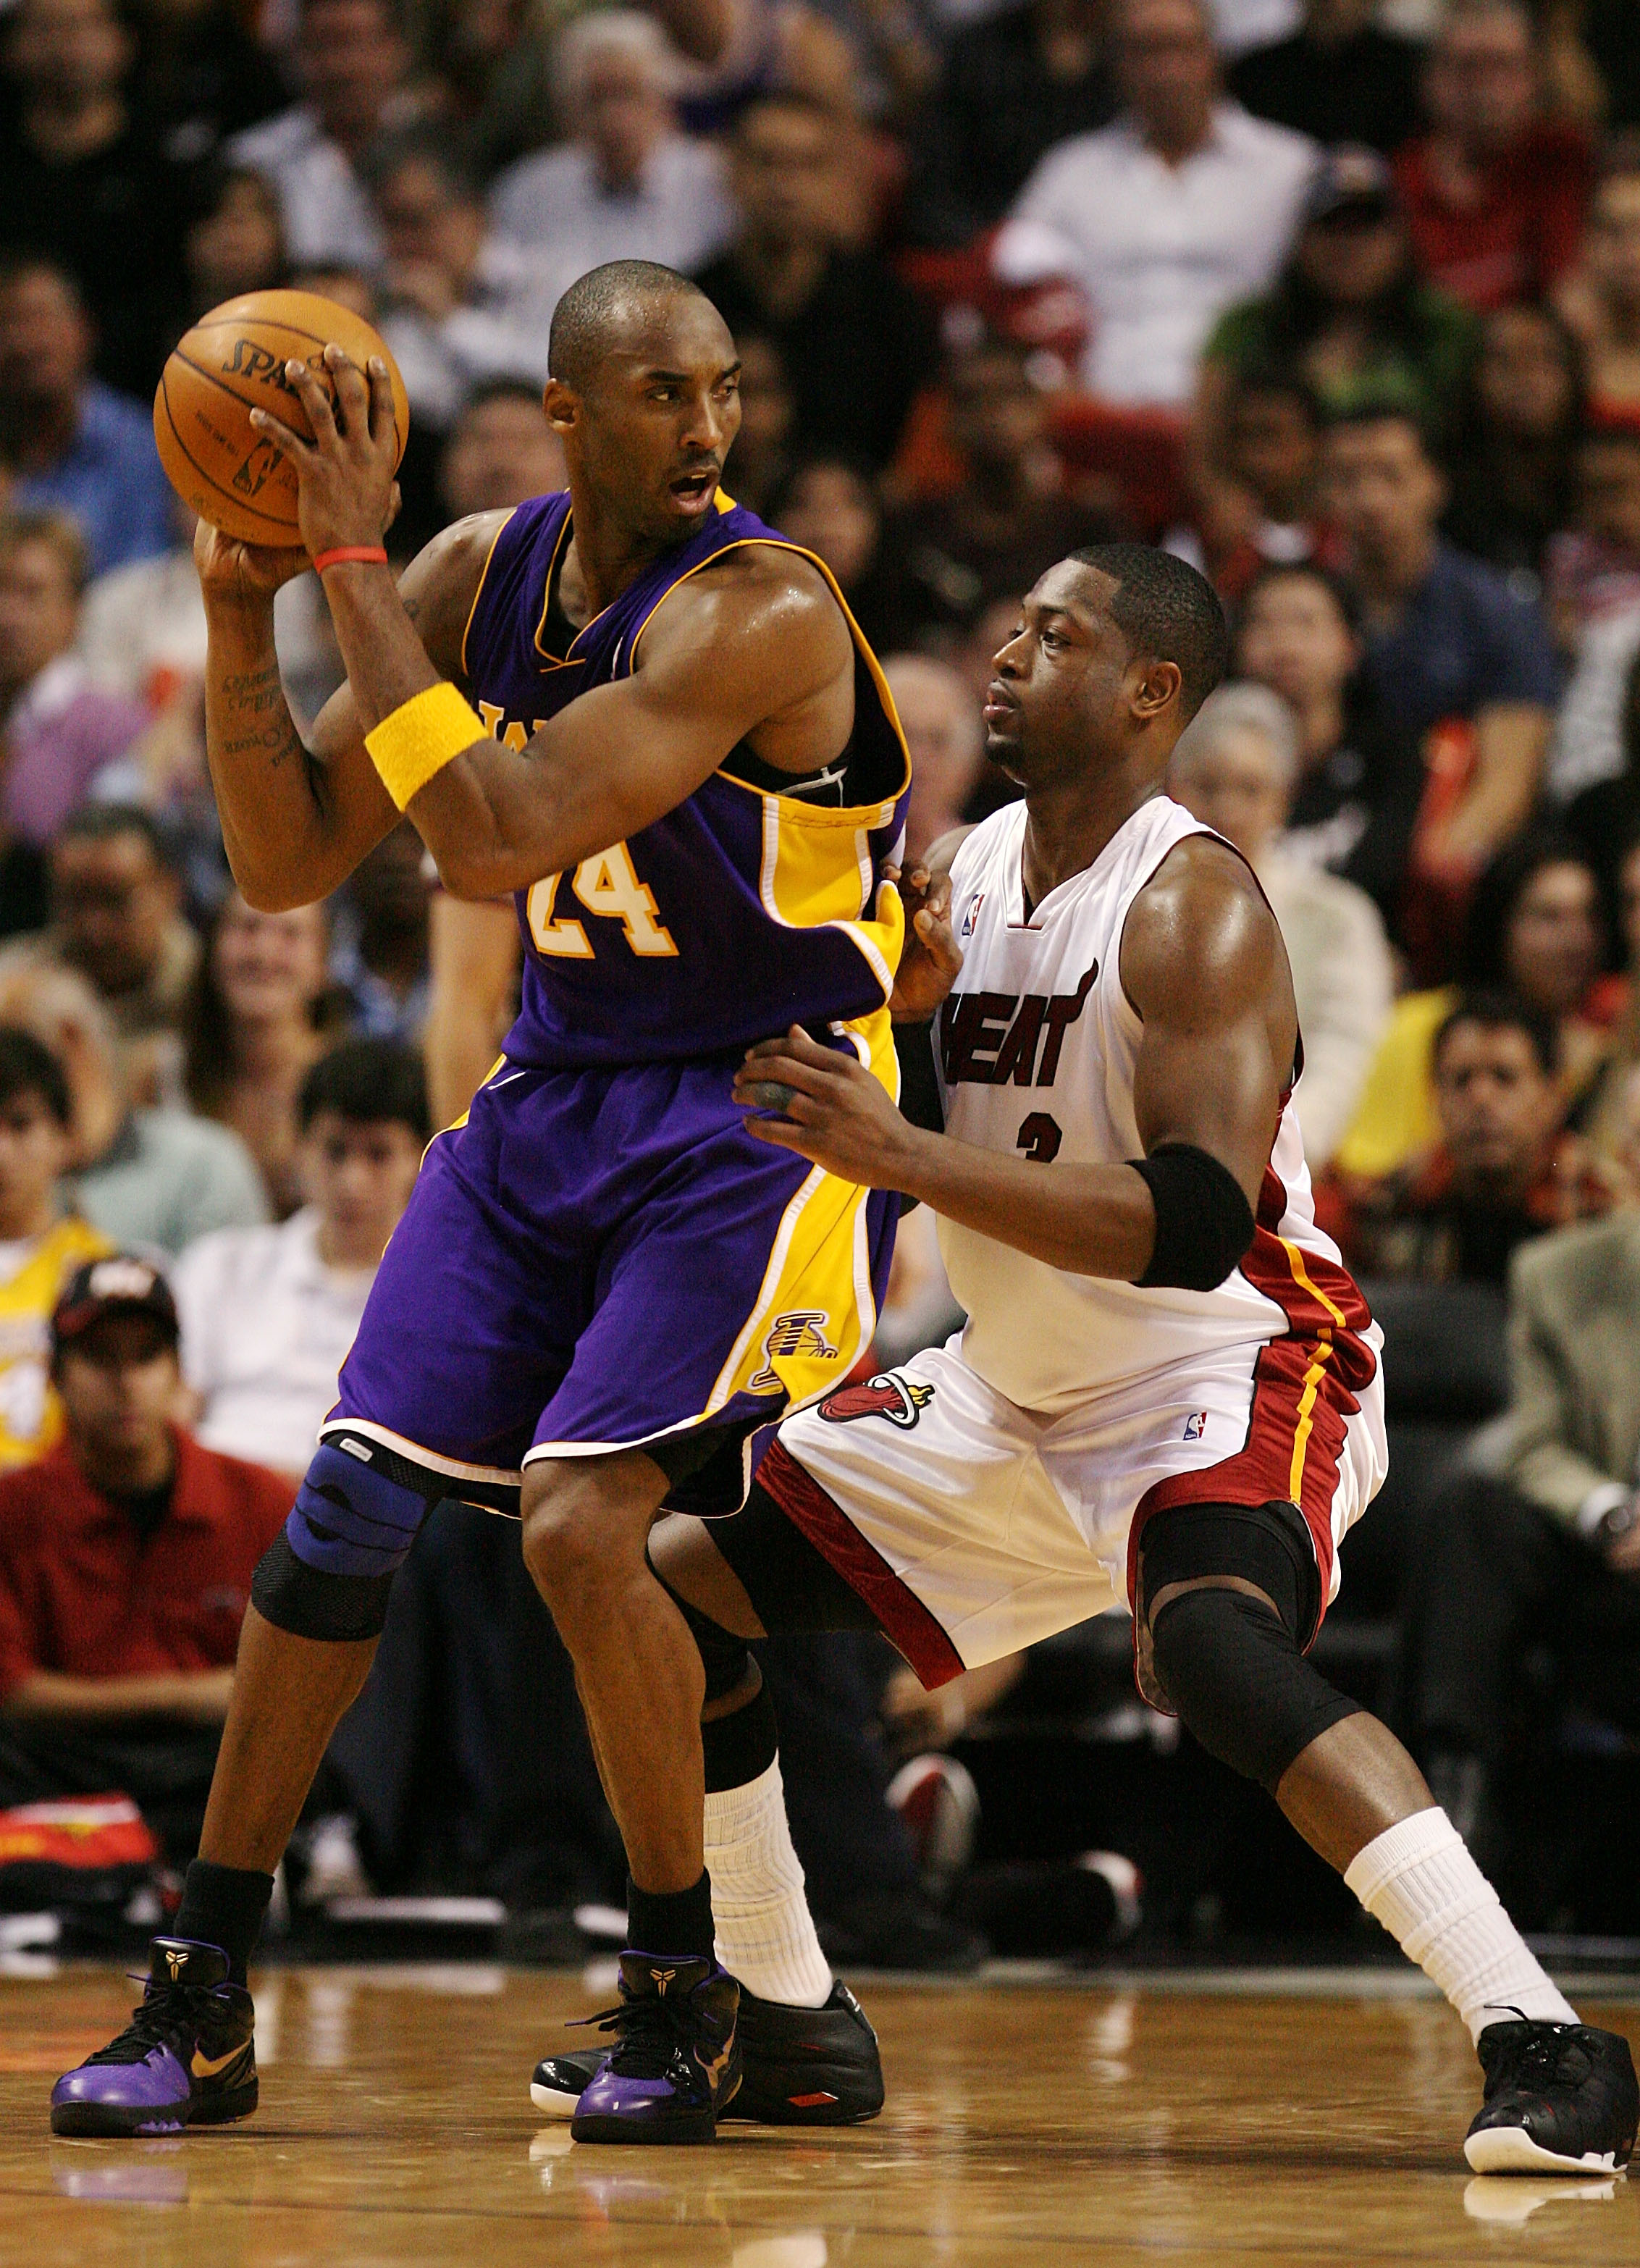 MIAMI - DECEMBER 19:  Dwyane Wade #3 of the Miami Heat guards Kobe Bryant #24 of the Los Angeles Lakers at American Airlines Arena on December 19, 2008 in Miami, Florida. The Heat defeated the Lakers 89-87. NOTE TO USER: User expressly acknowledges and ag